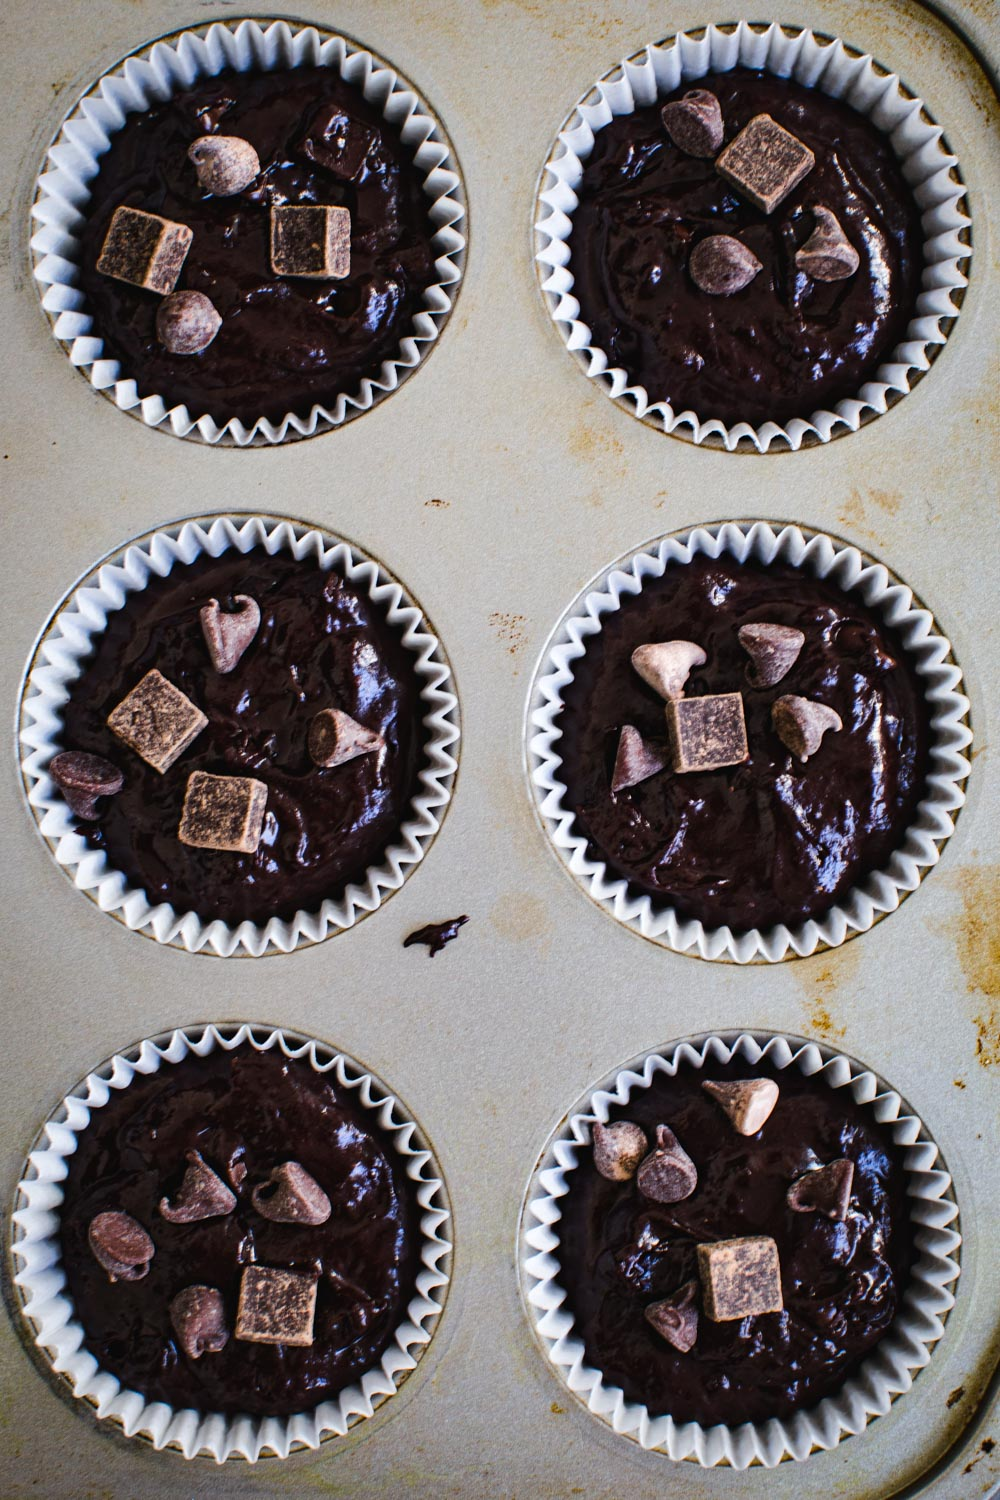 Double chocolate chip muffin batter in muffin tin.